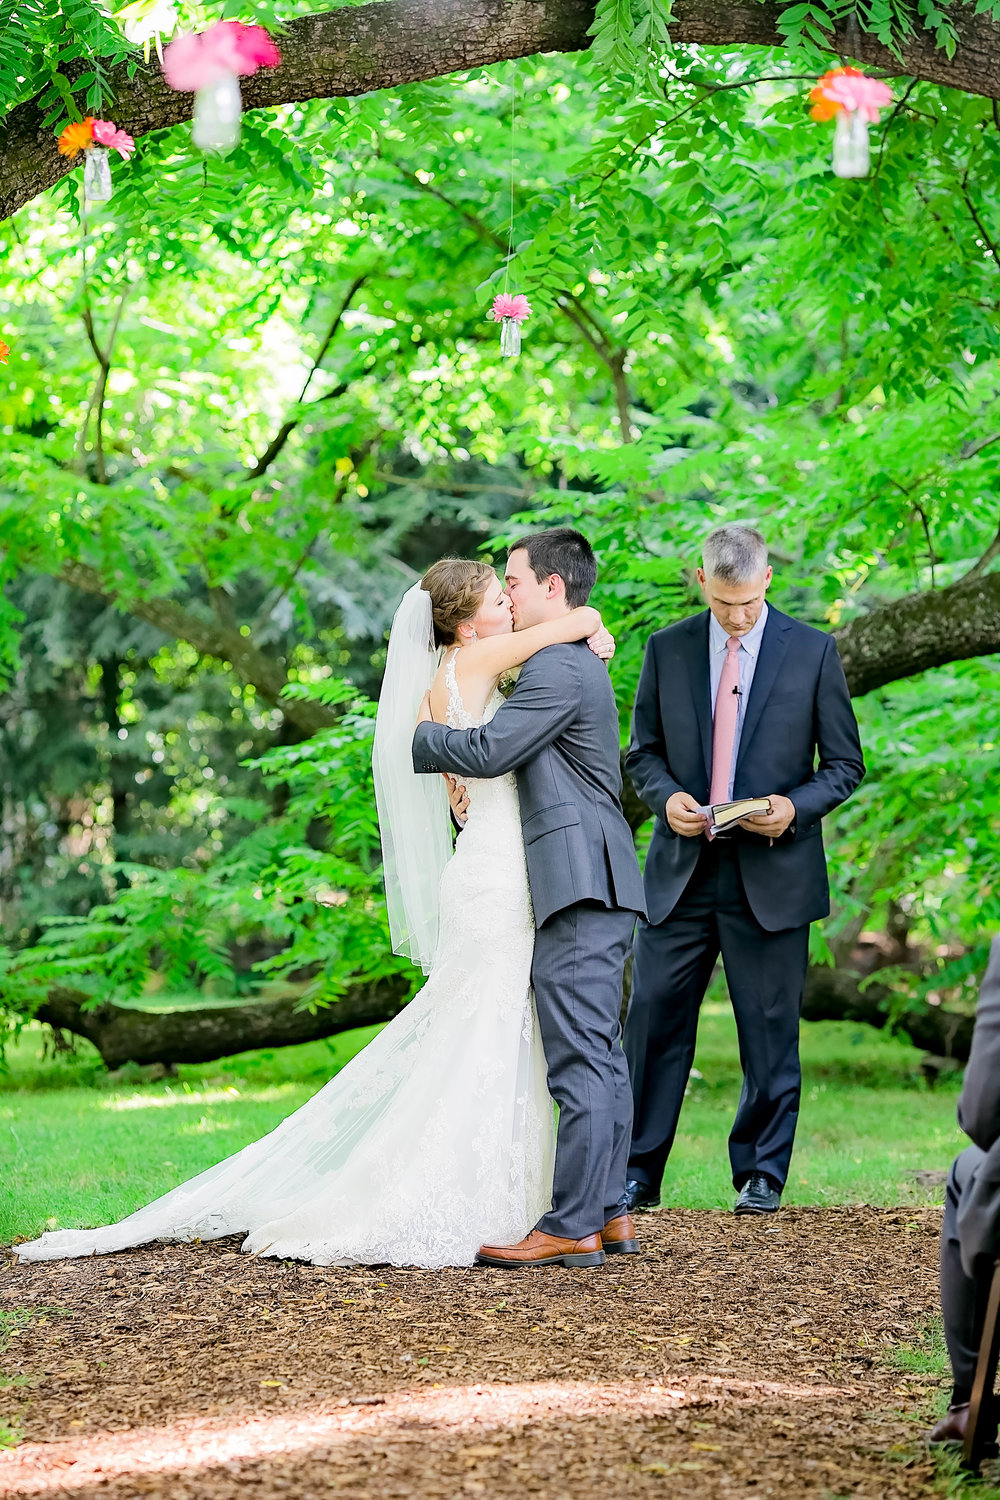 Hot Springs, NC wedding, East Tennessee Wedding photography, wedding ceremony, first kiss